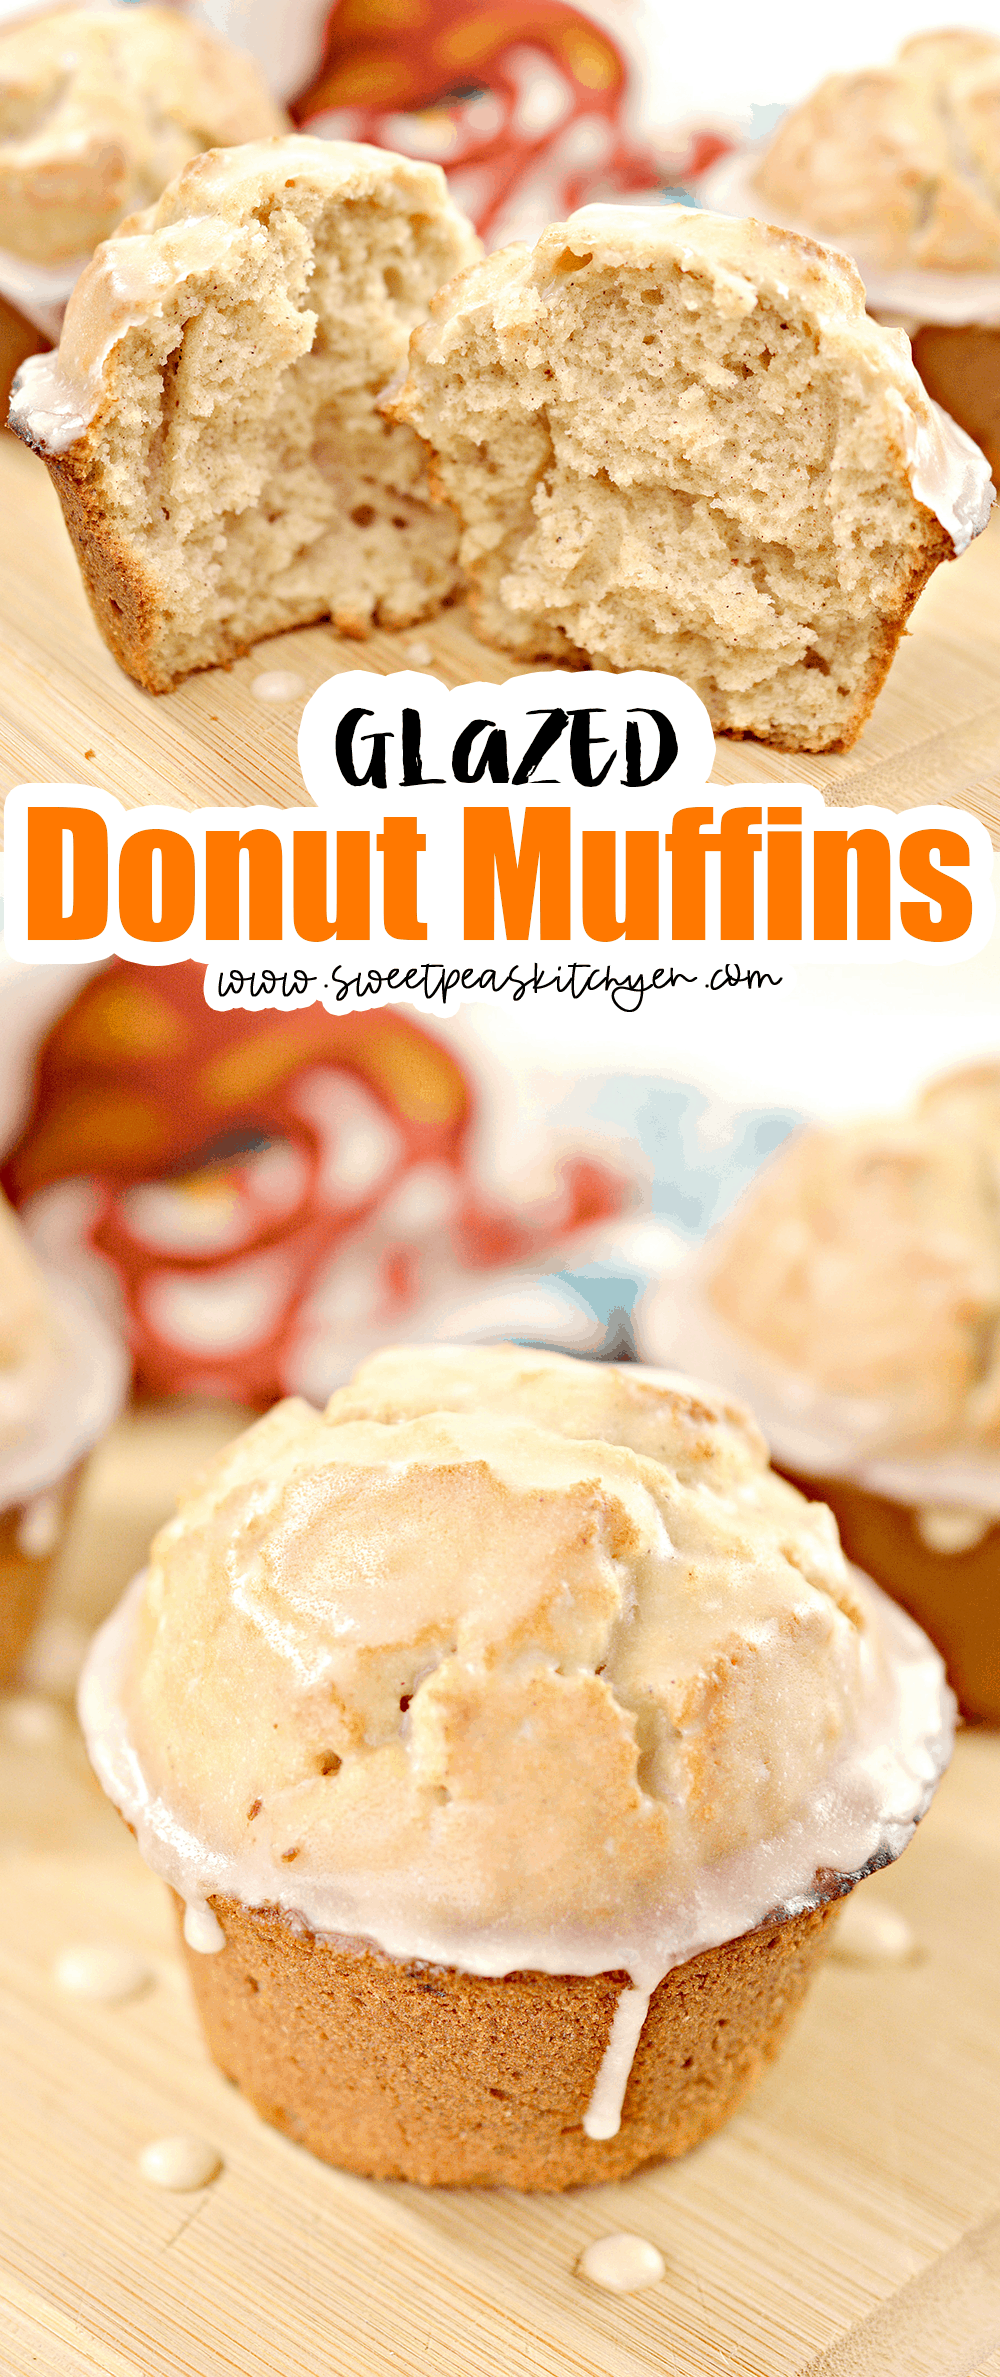 Glazed Donut Muffins Pinterest PIN